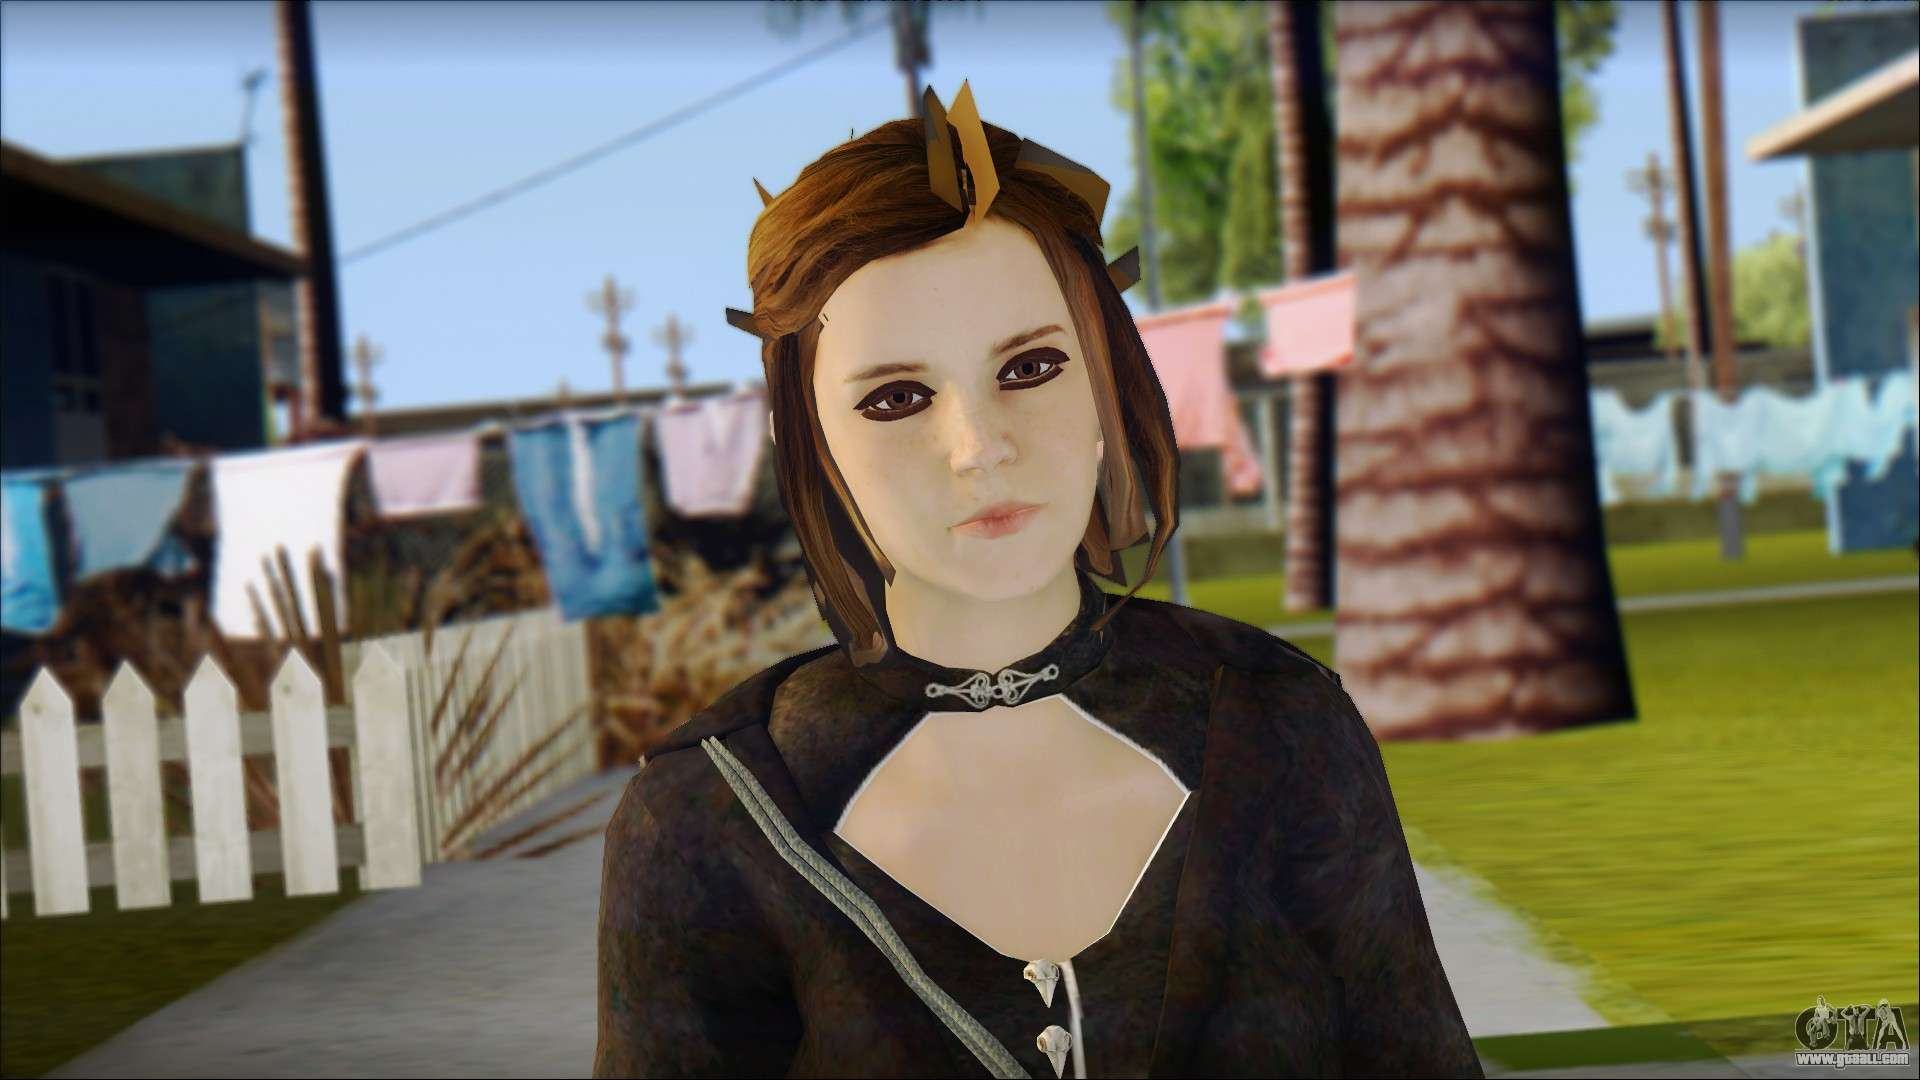 Artificial girl 3 skin mod download hentia tube